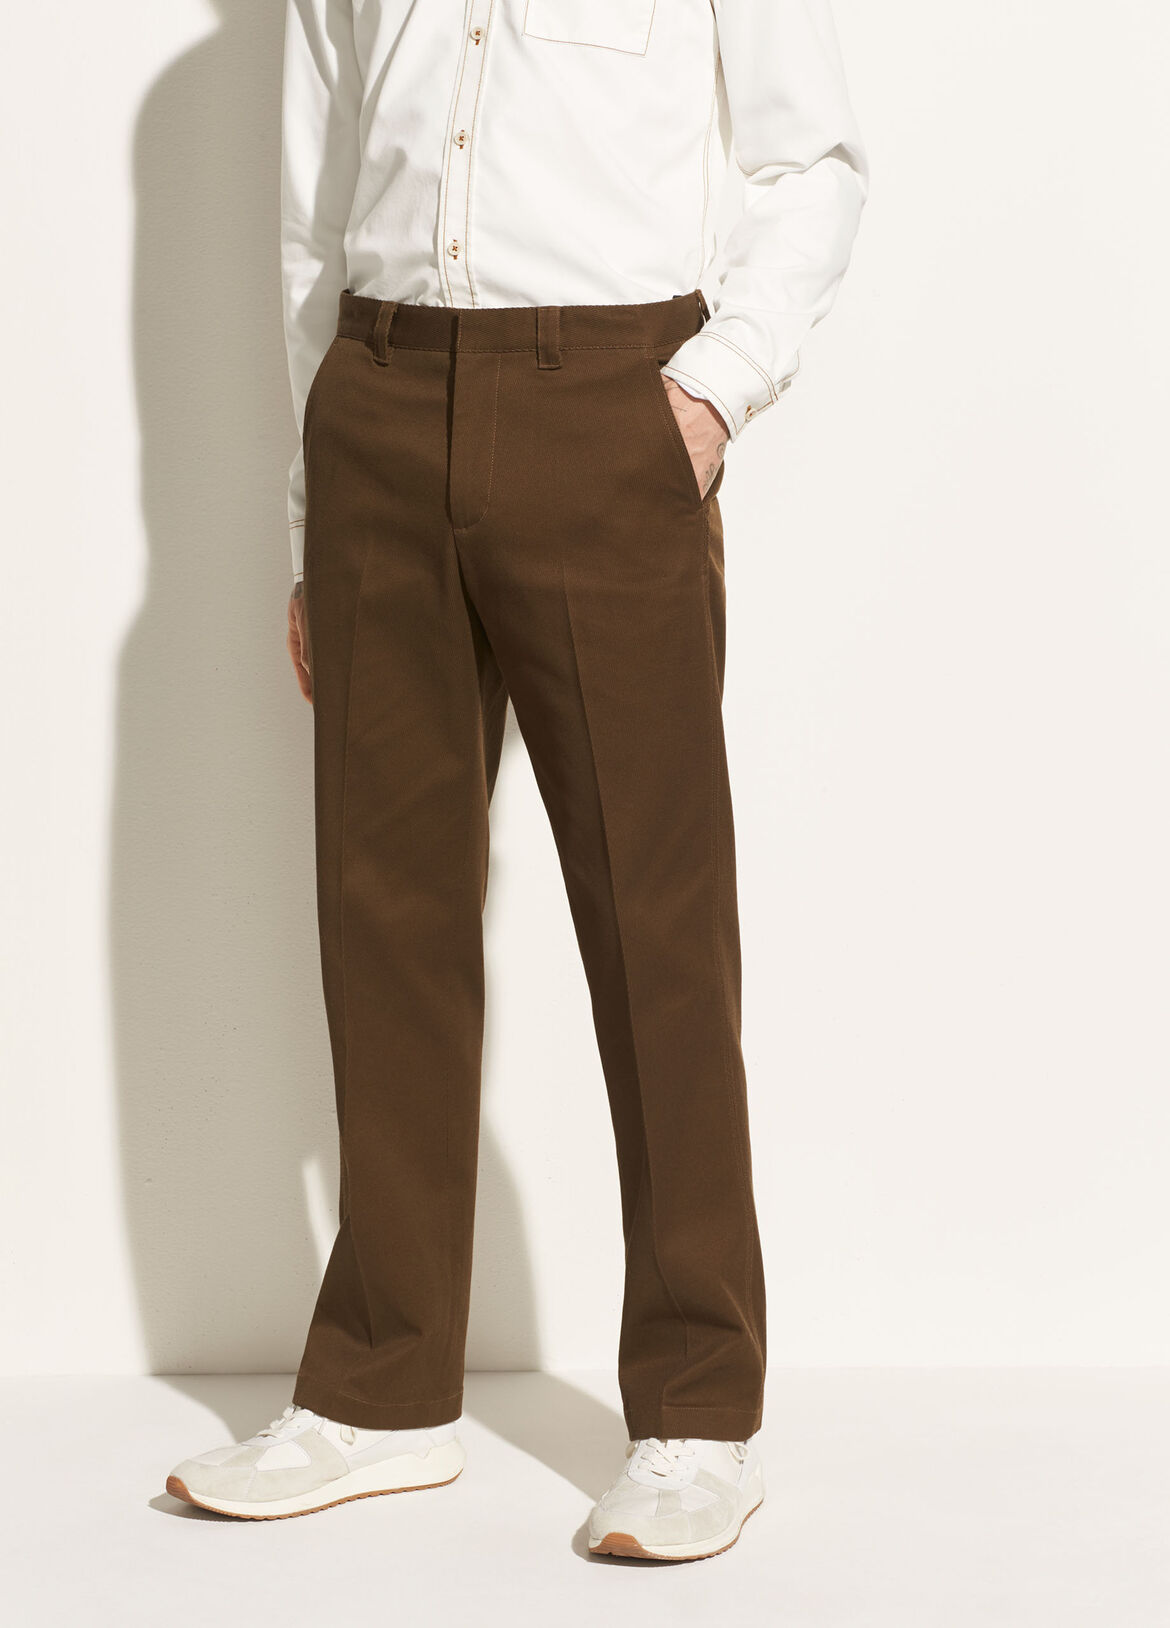 빈스 Vince Stay Pressed Trouser,infantry green